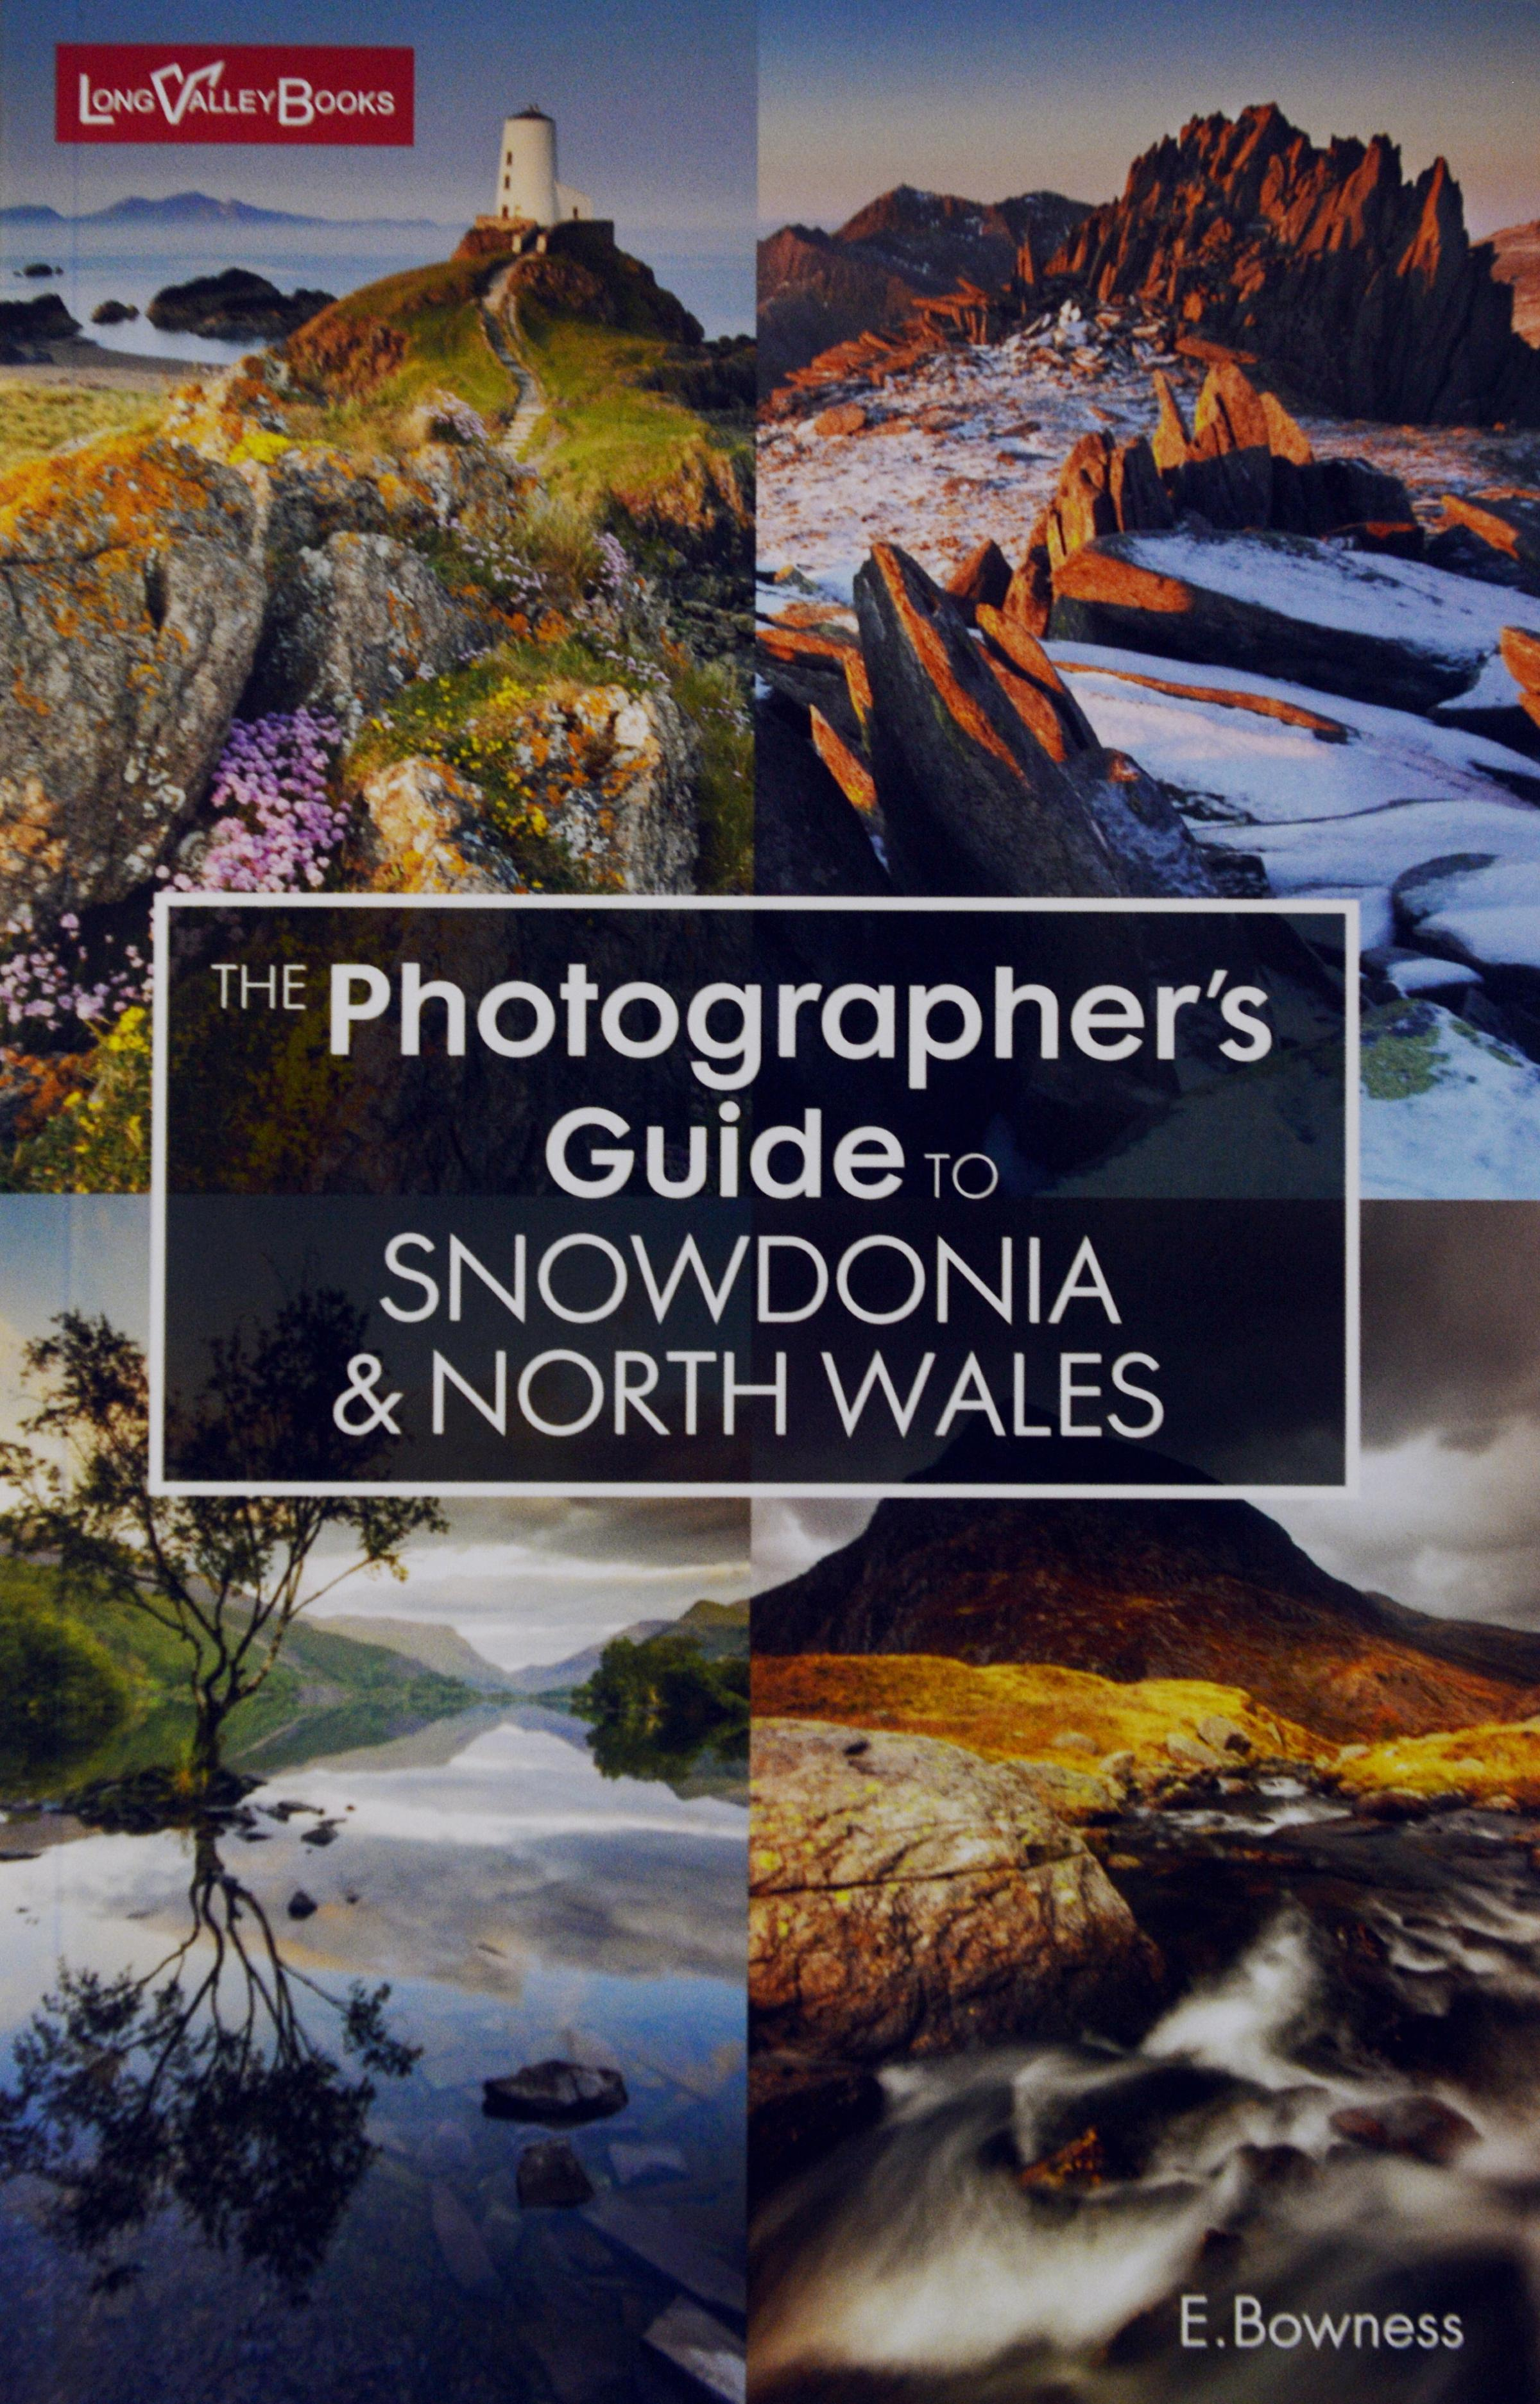 The Photographer's Guide to Snowdonia and North Wales by Ellen Bowness